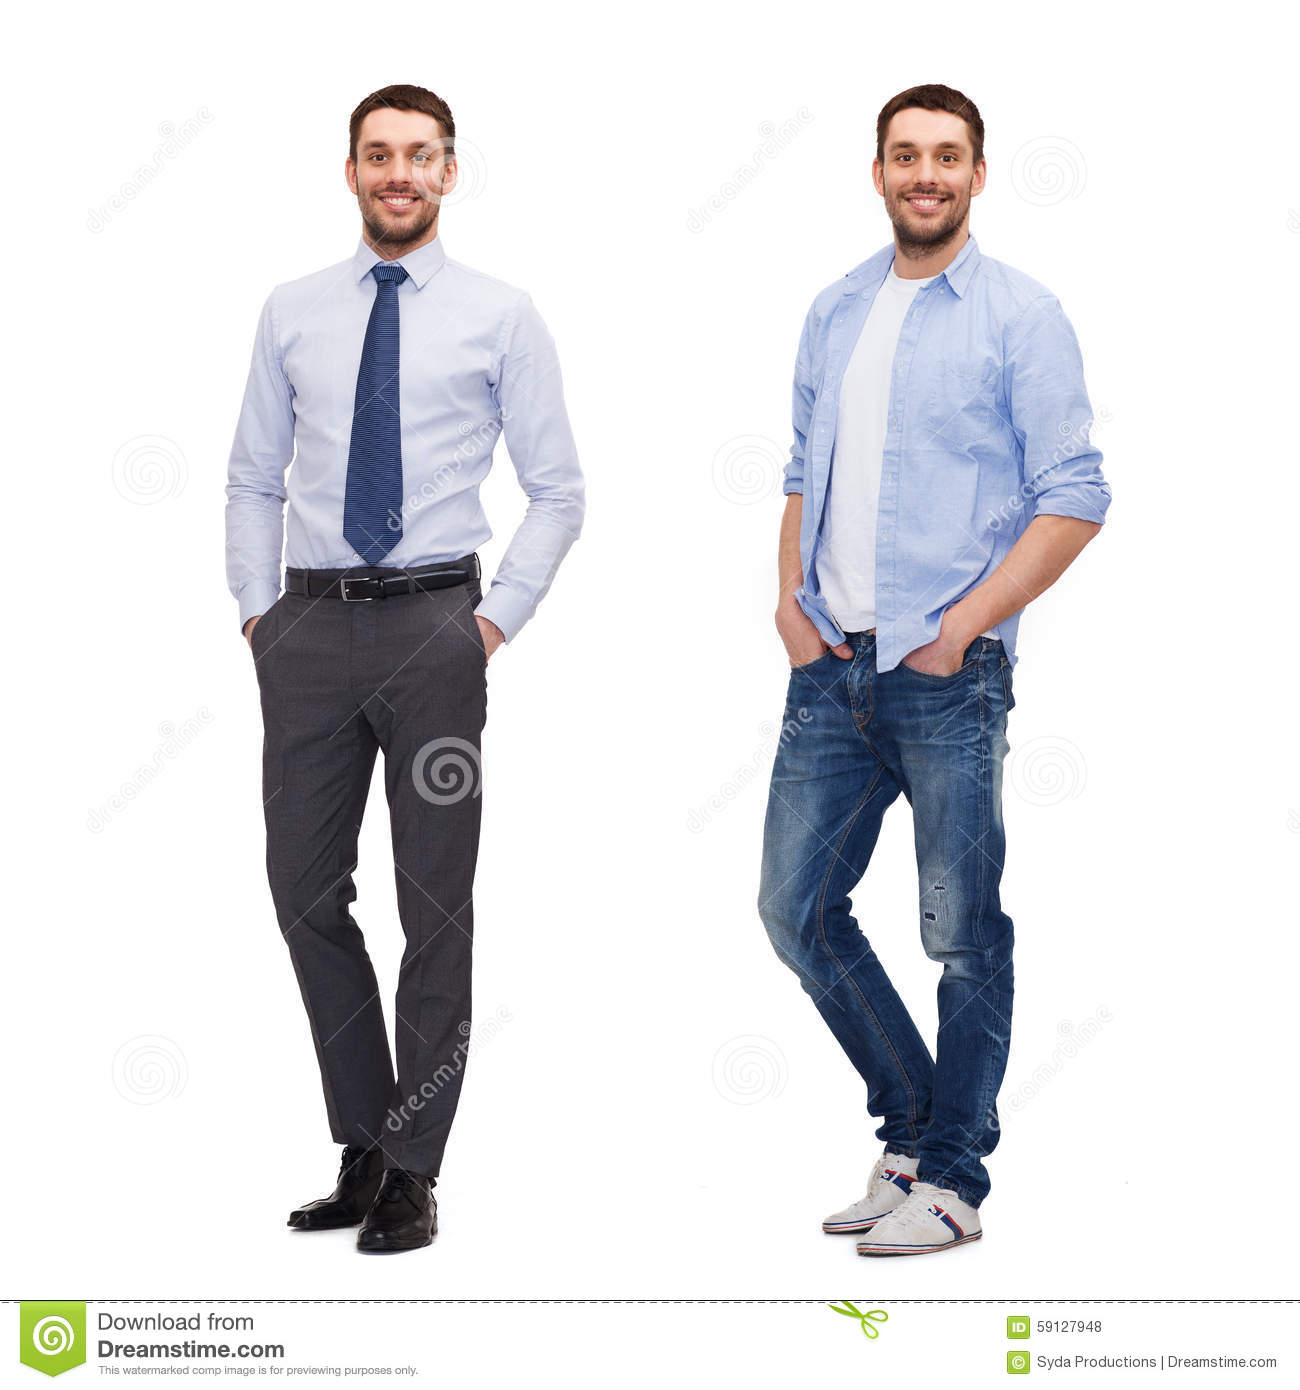 Same Man In Different Style Clothes Stock Photo Image 59127948